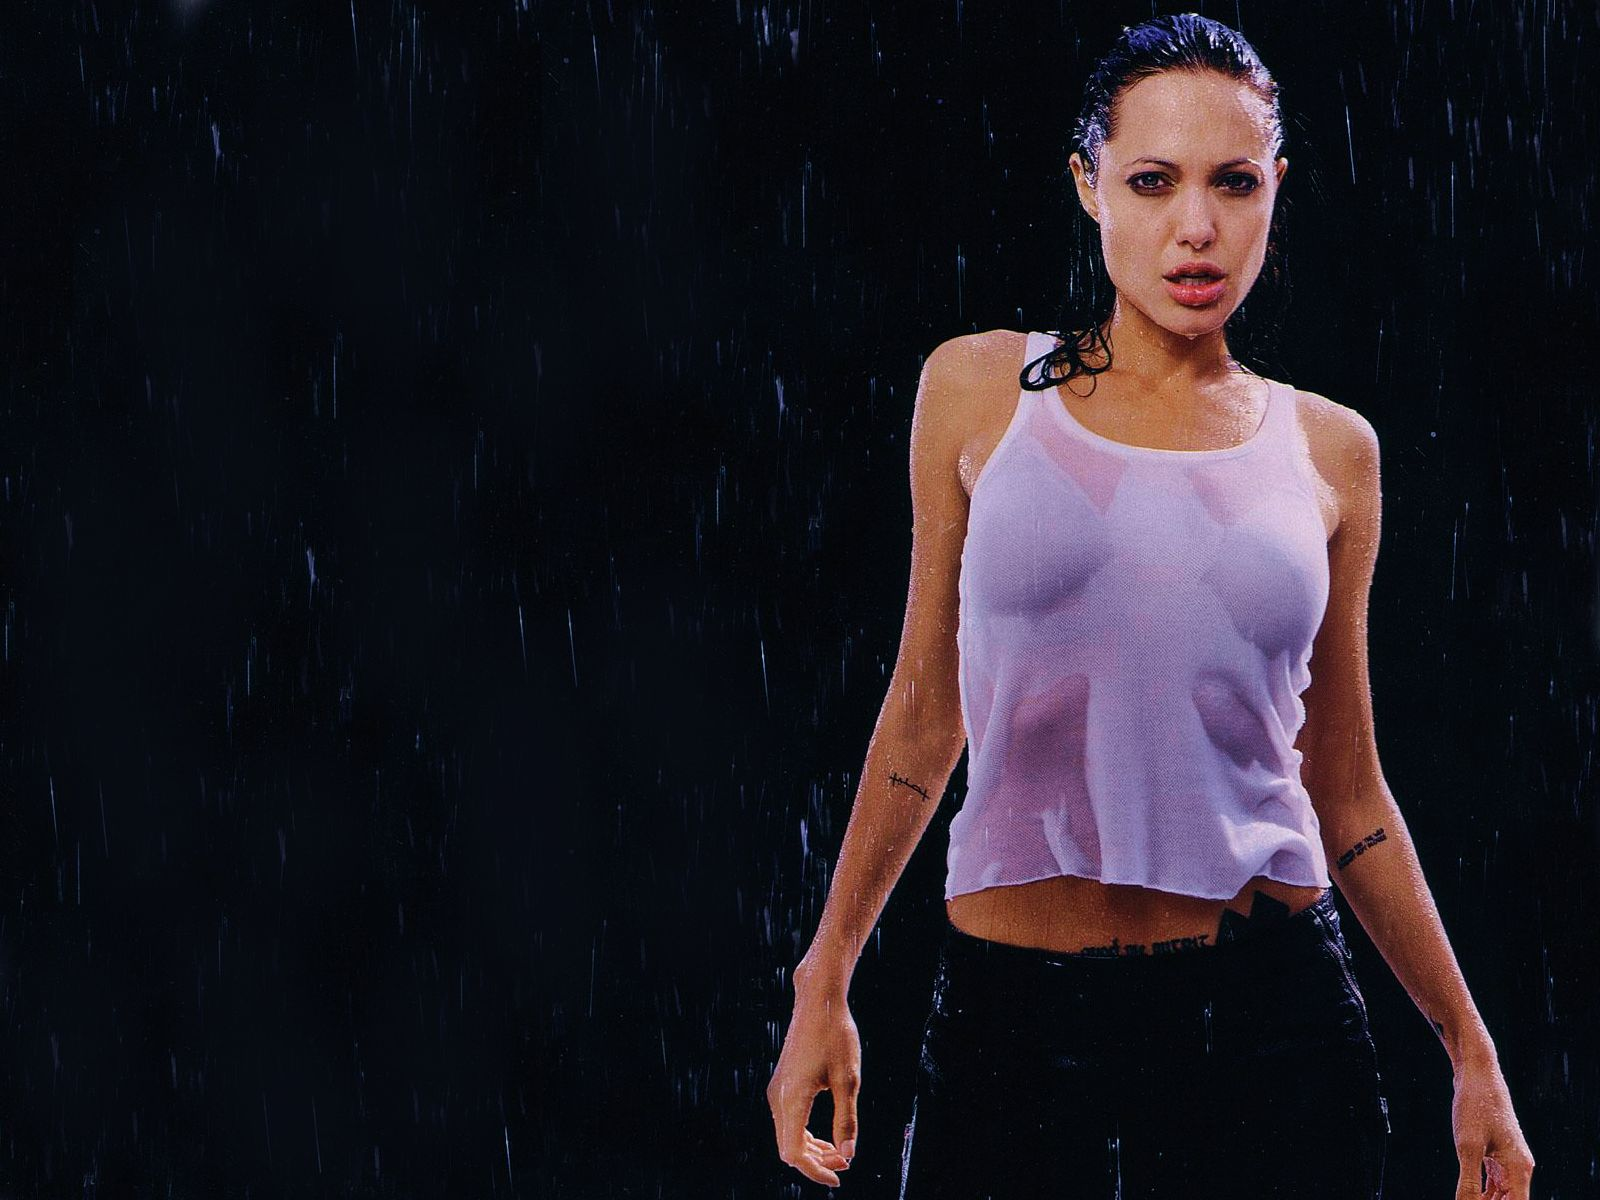 angelina jolie new hot - photo #27